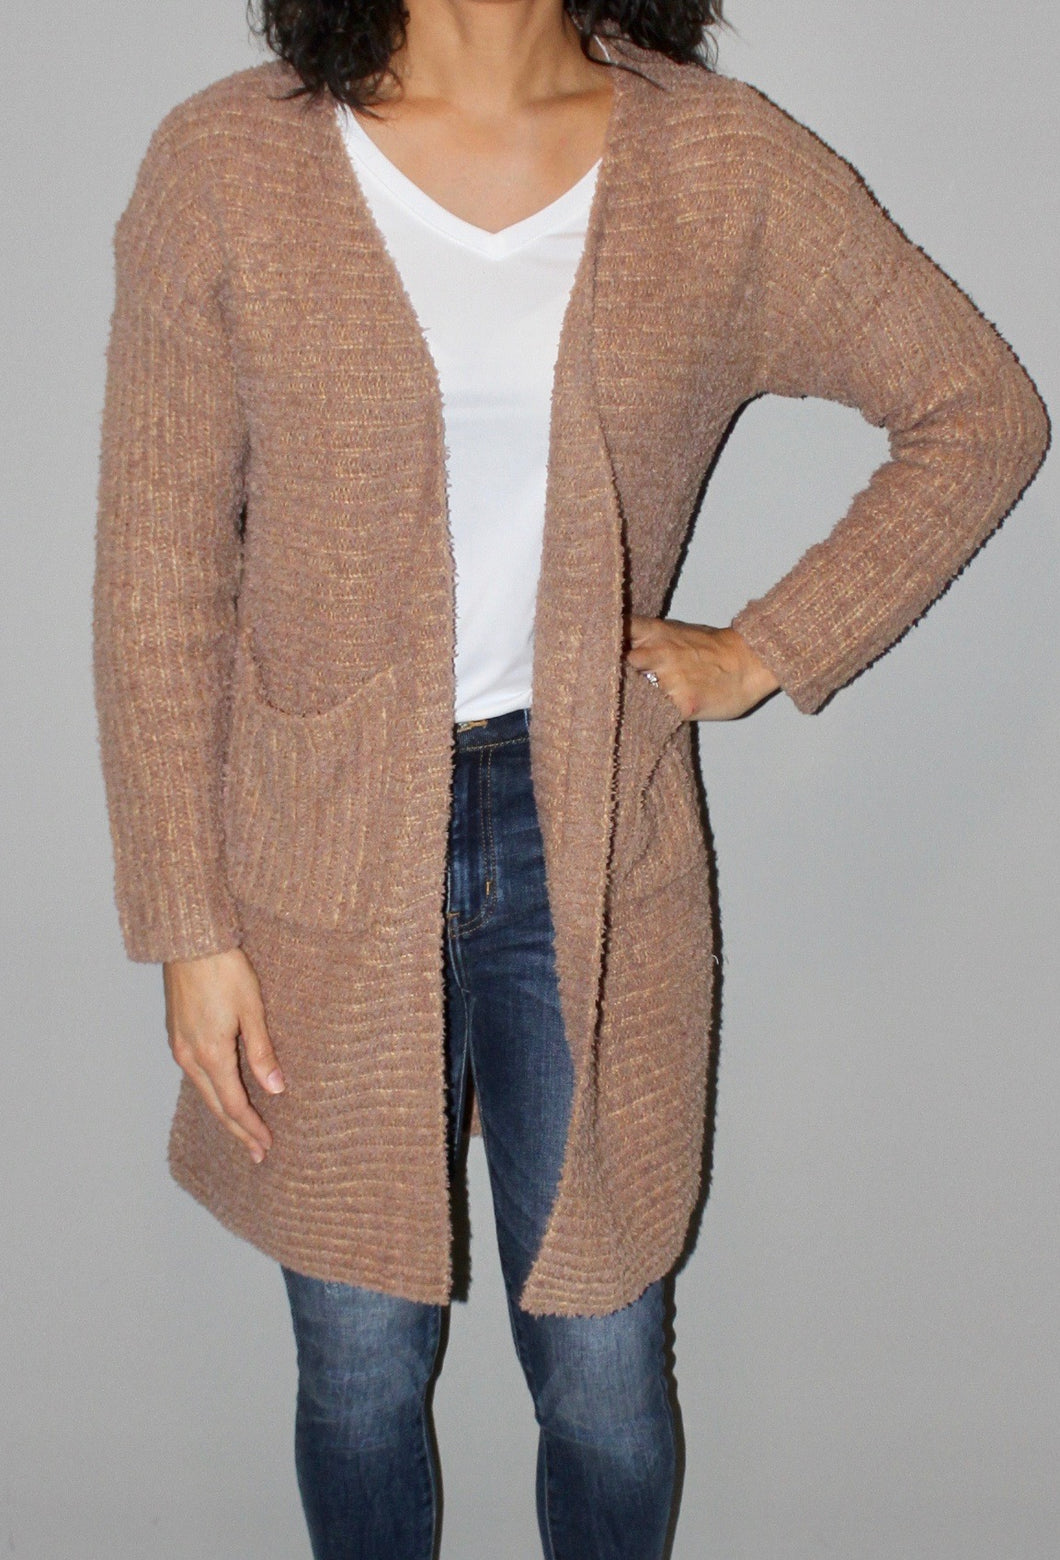 TEXTURED RIBBED KNIT CARDIGAN